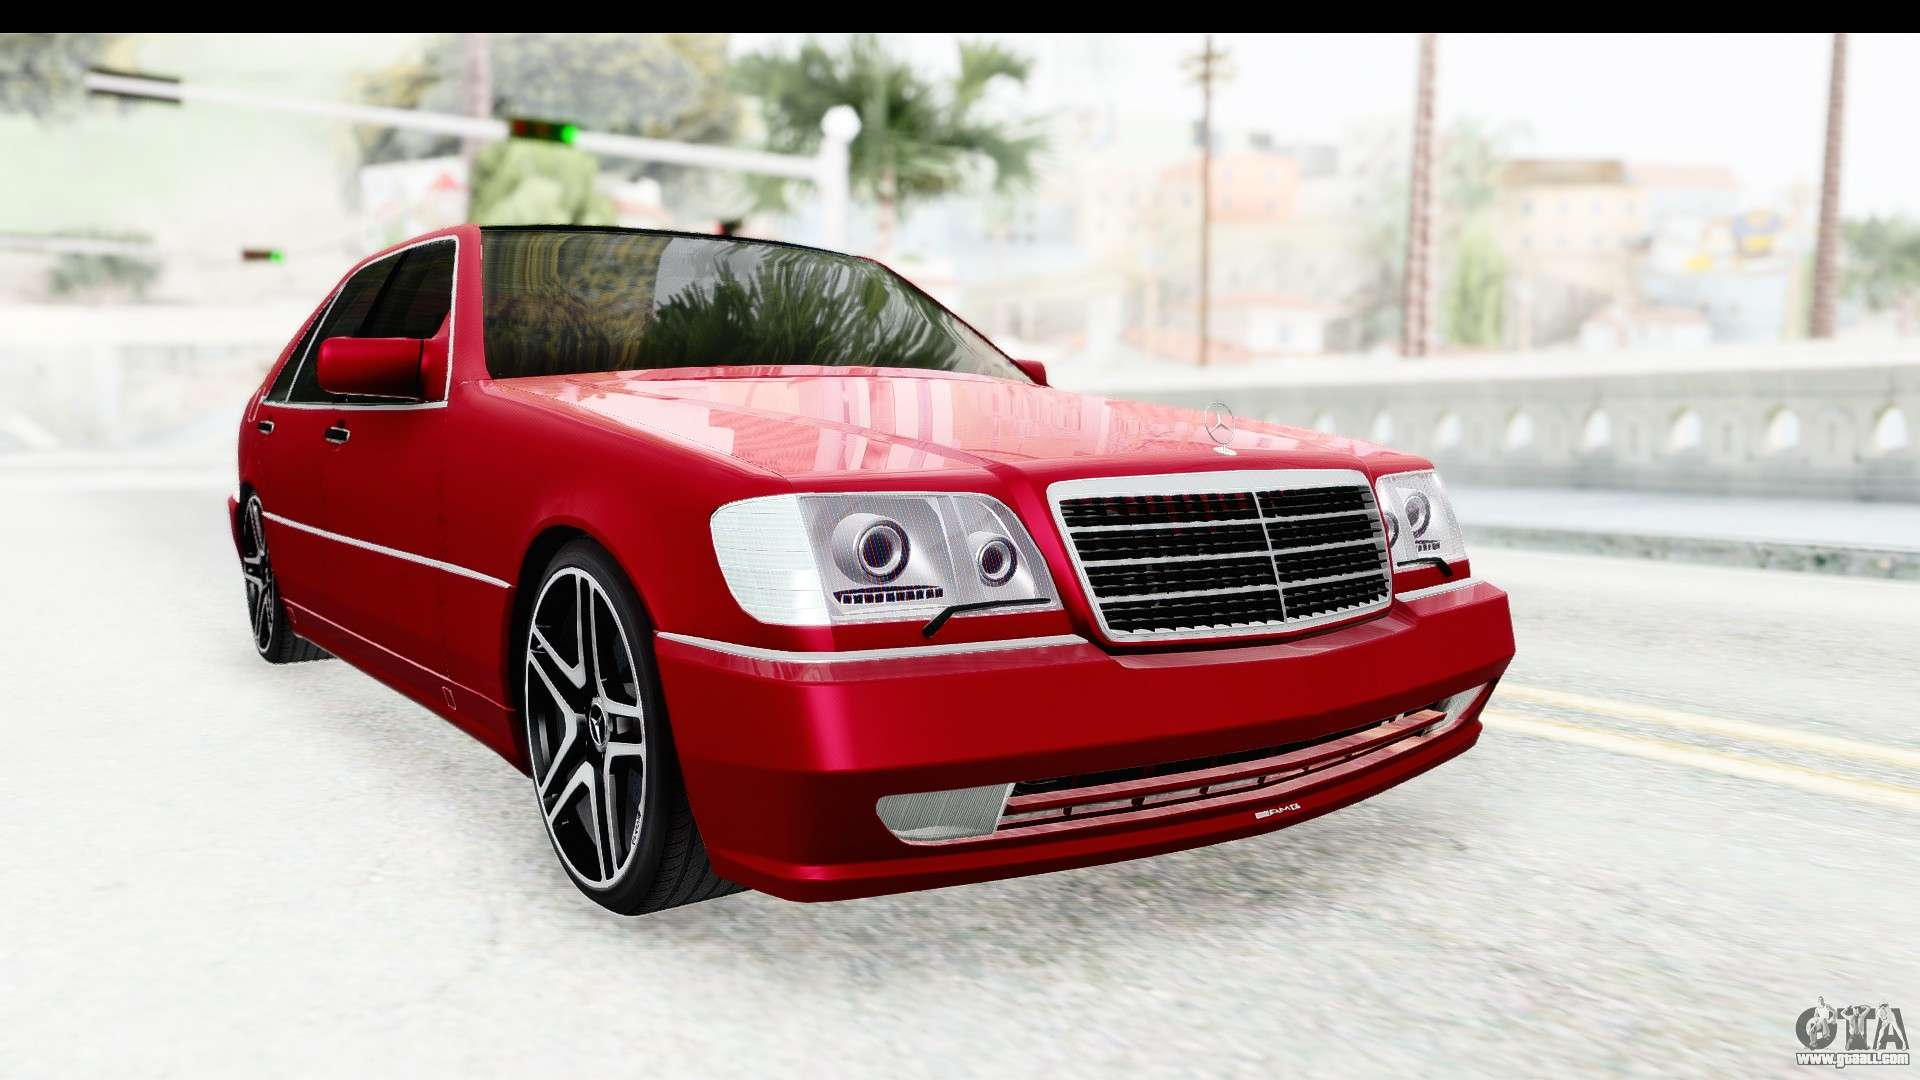 Mercedes benz w140 s600 amg for gta san andreas for S600 mercedes benz